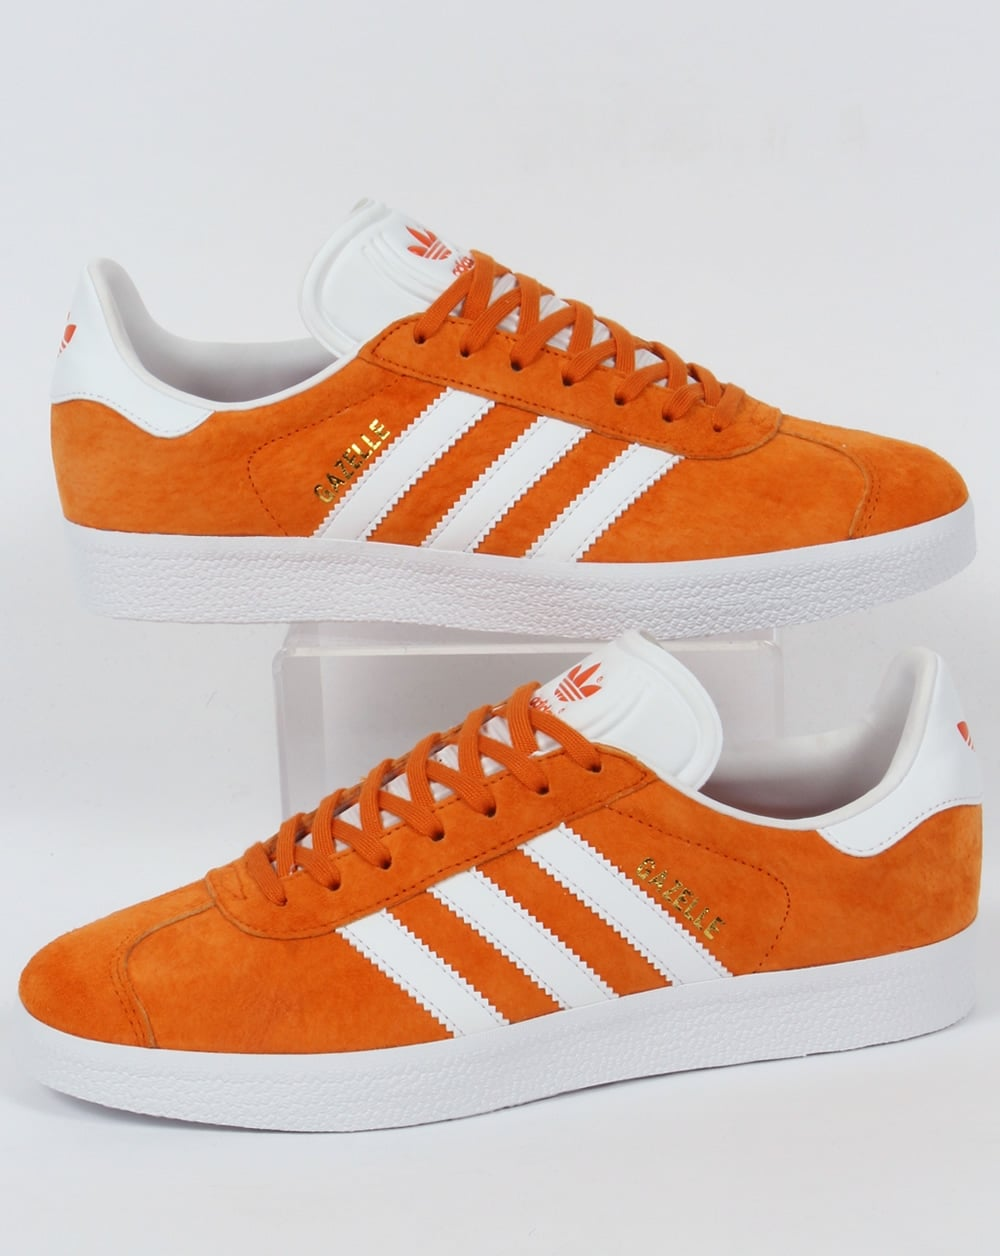 newest collection 208ba 814f7 adidas Trainers Adidas Gazelle Trainers Deep OrangeWhite